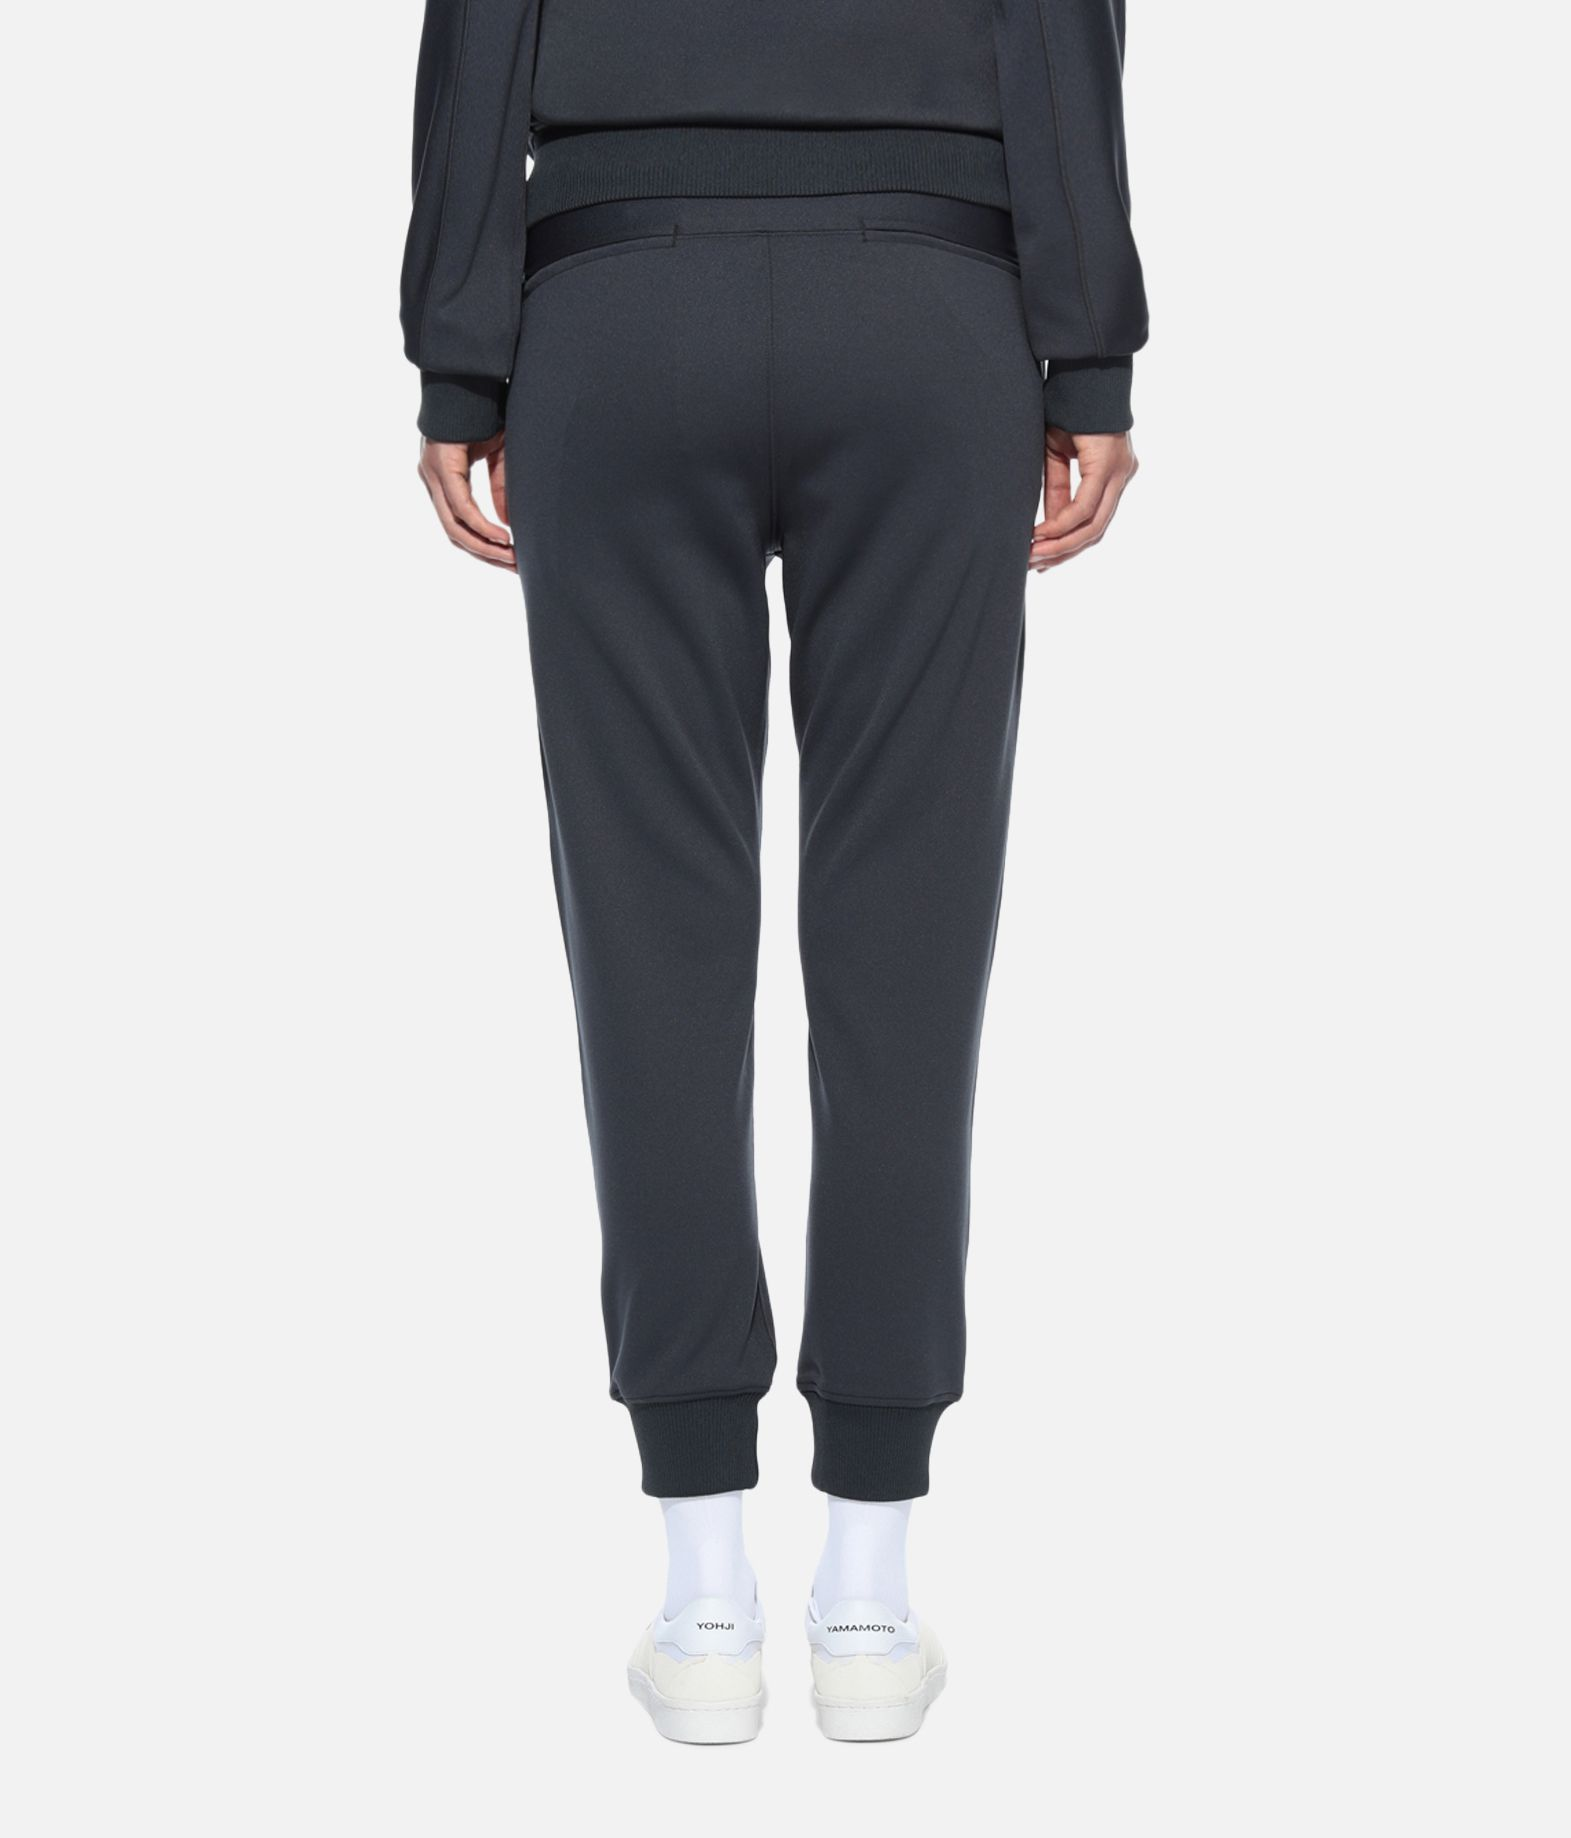 Y-3 Y-3 Classic Track Pants Sweatpants Woman d